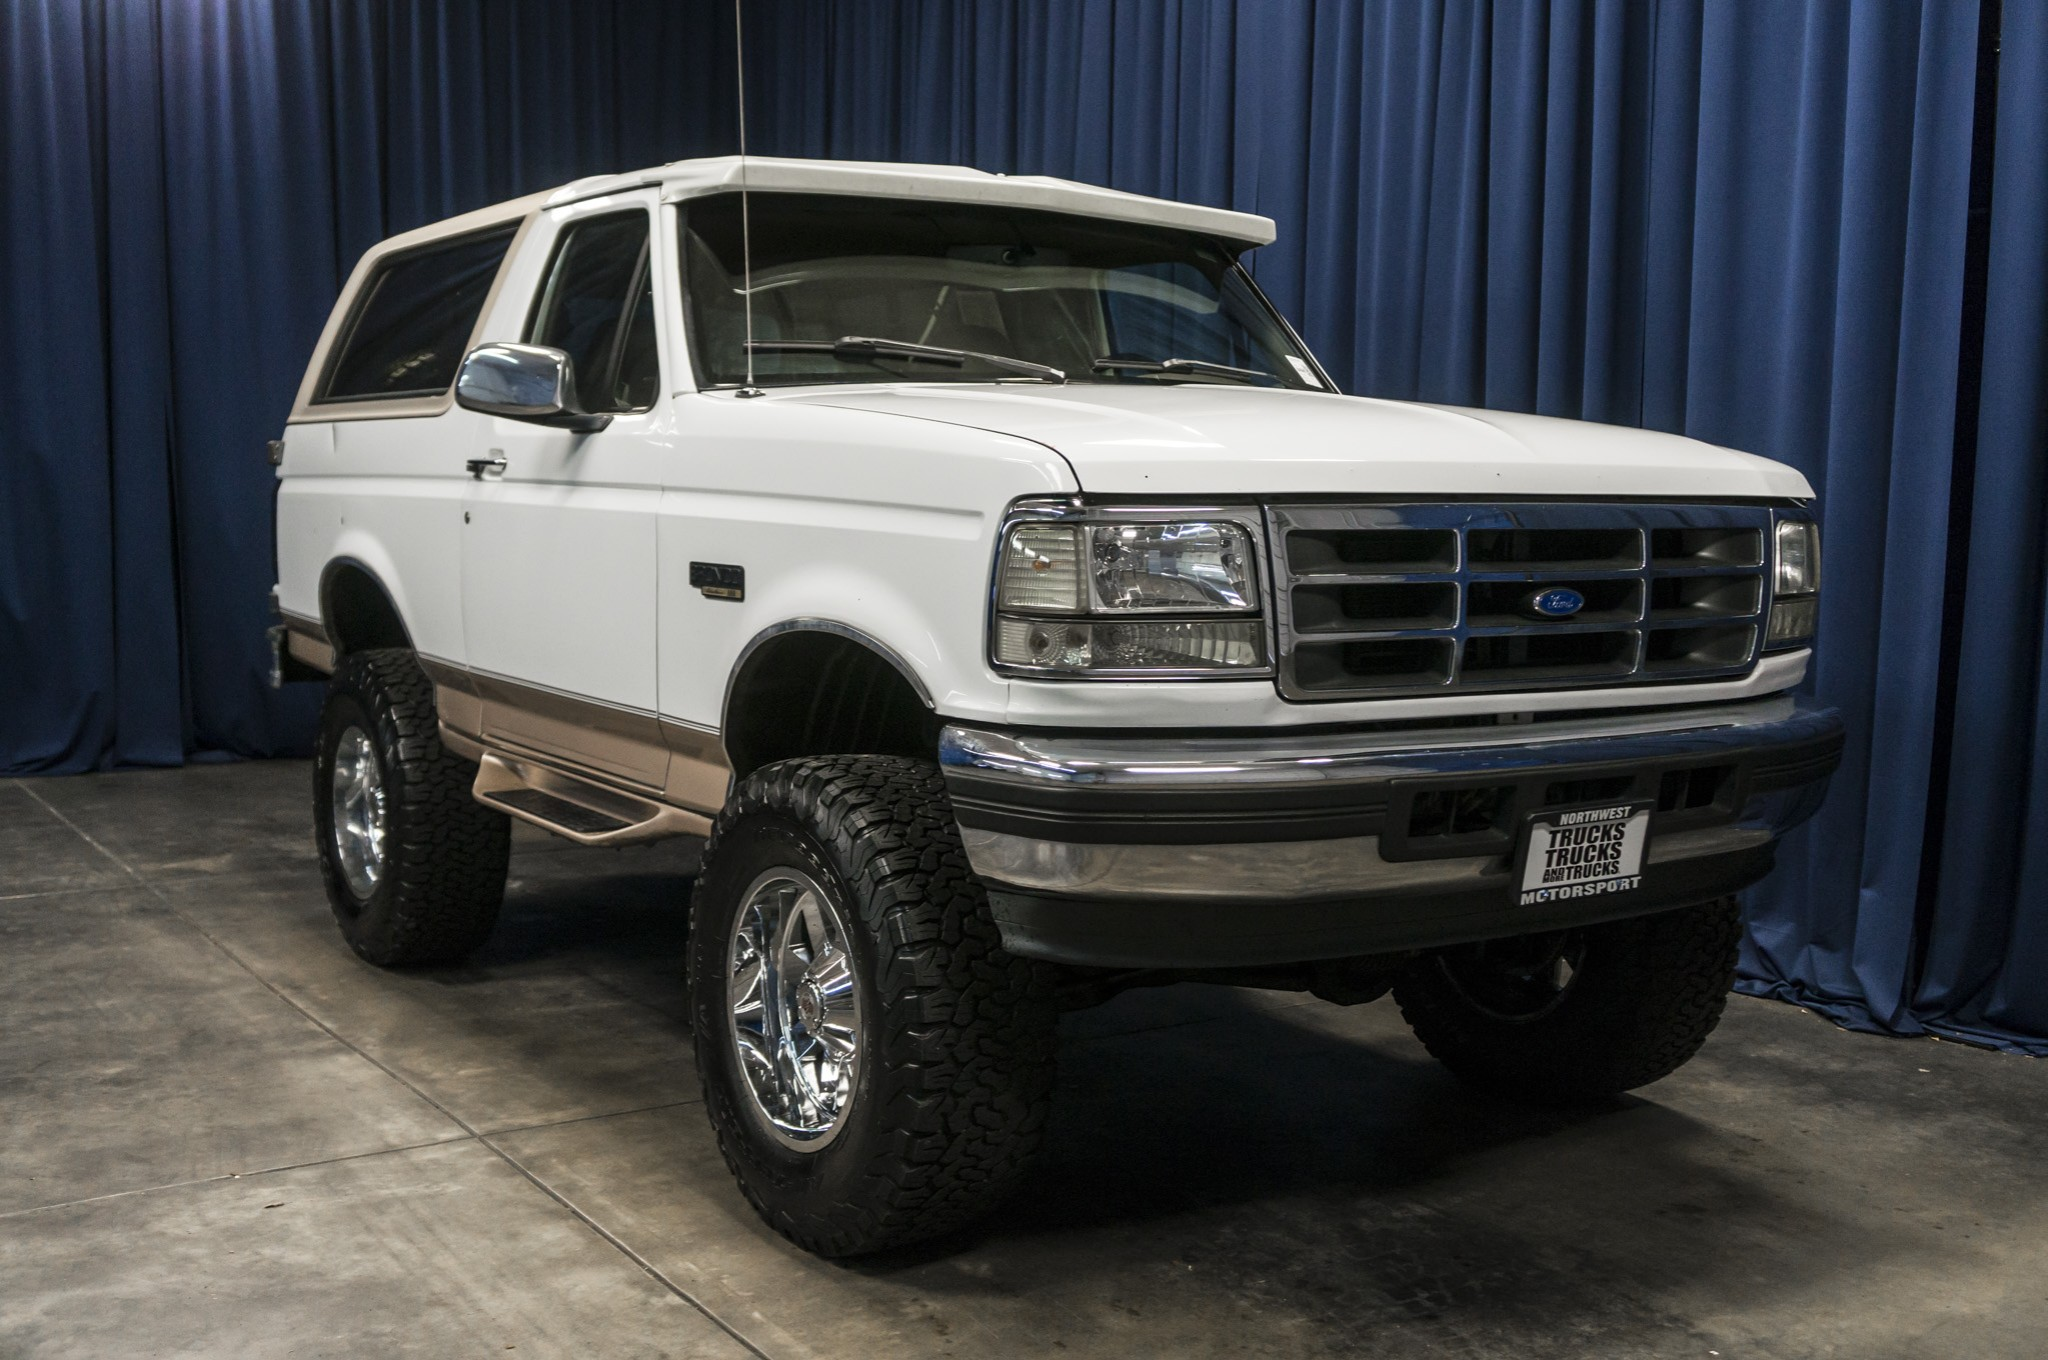 Used Lifted 1996 Ford Bronco Eddie Bauer 4x4 SUV For Sale